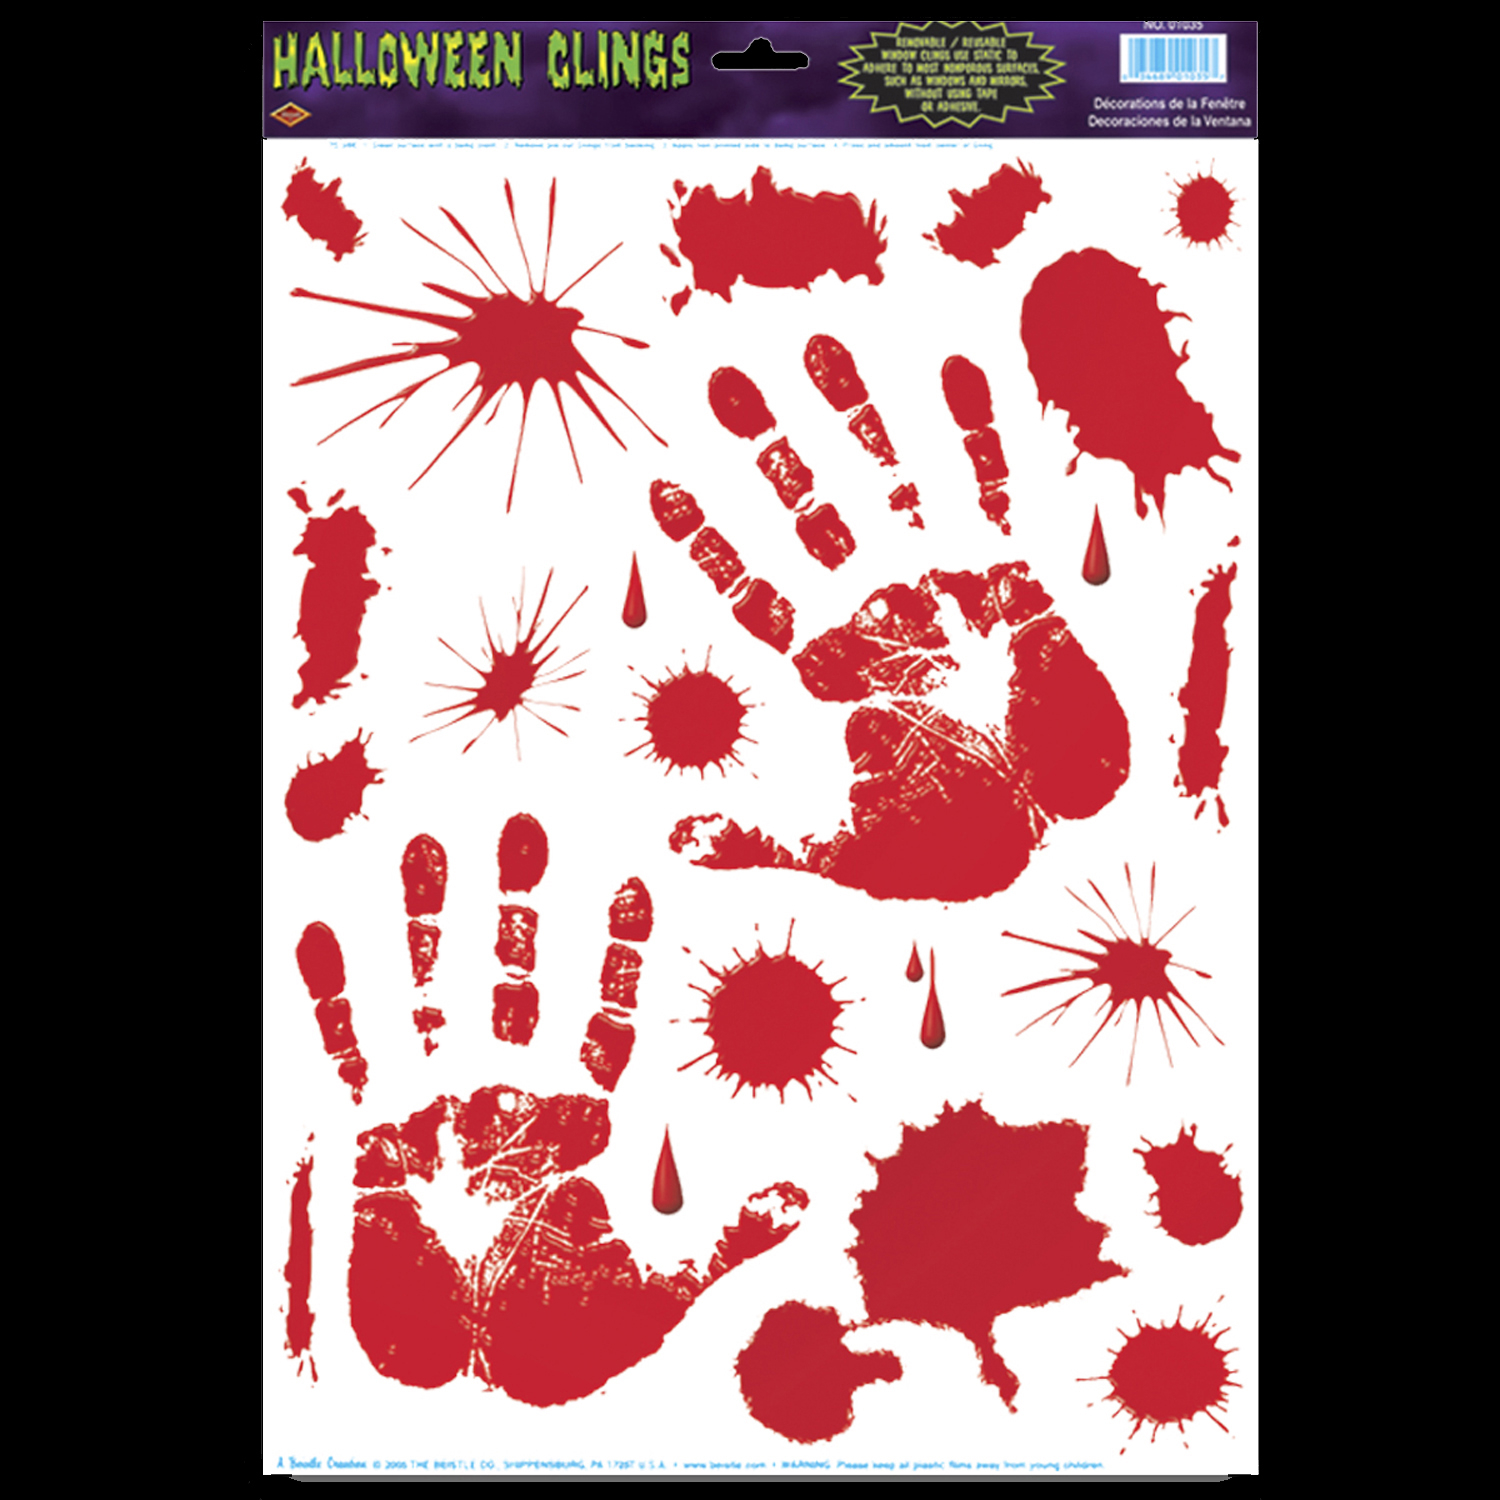 dexter psycho zombie life size gothic horror prop bloody hand prints and drops halloween decoration window